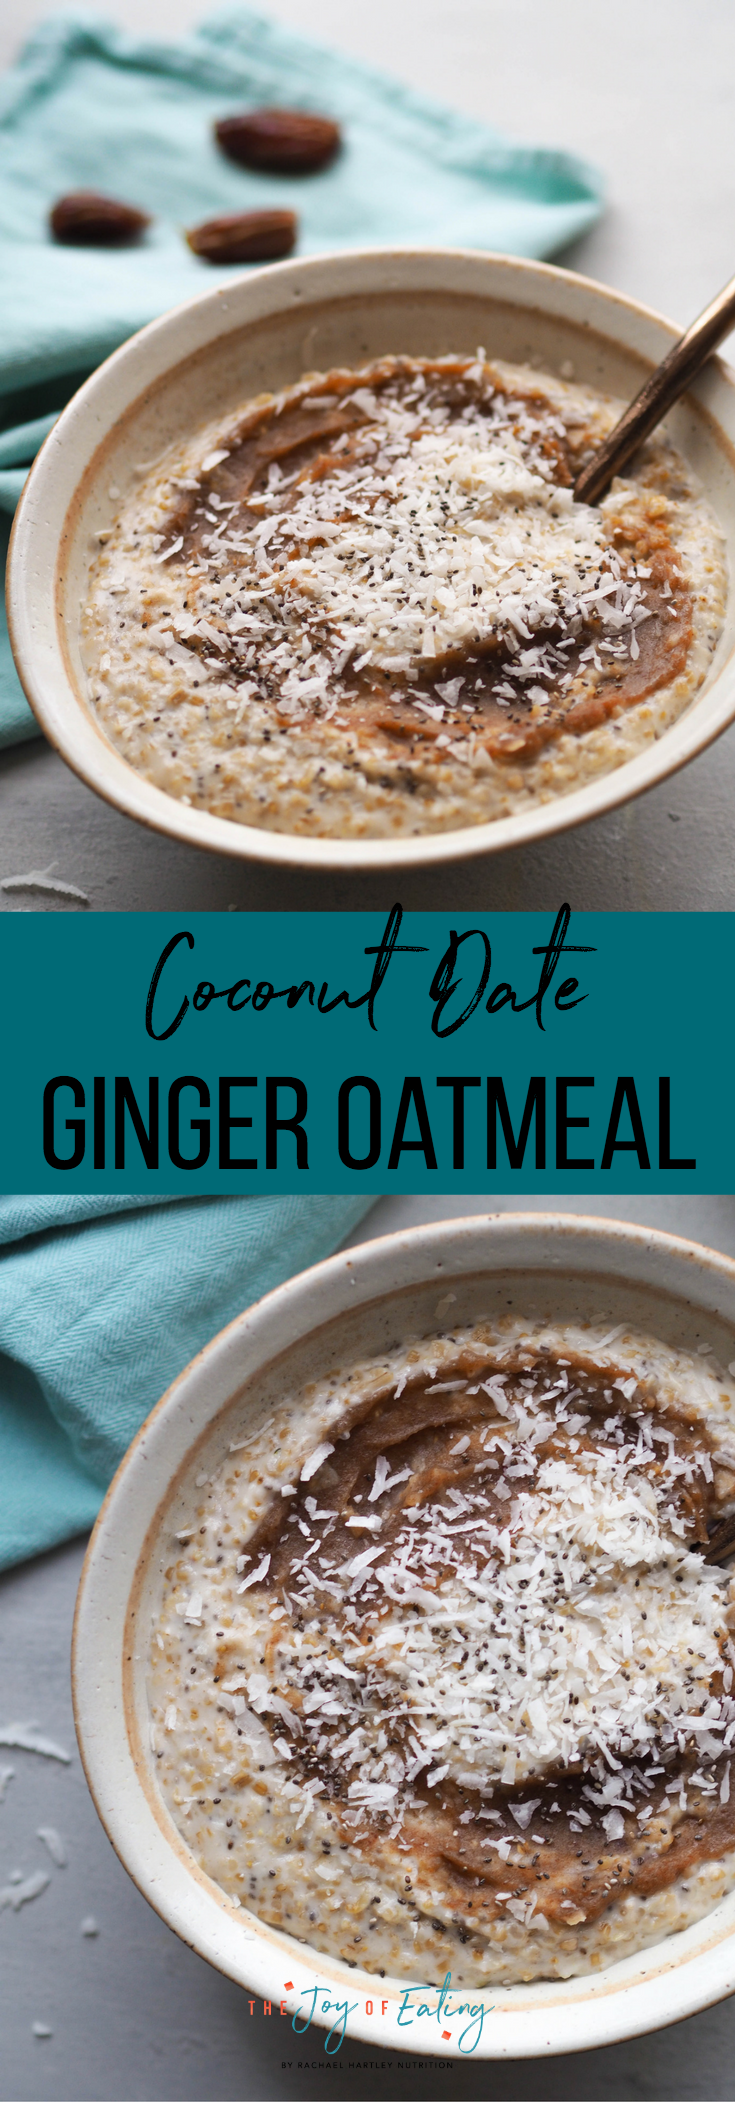 Coconut Date Ginger Oatmeal.png